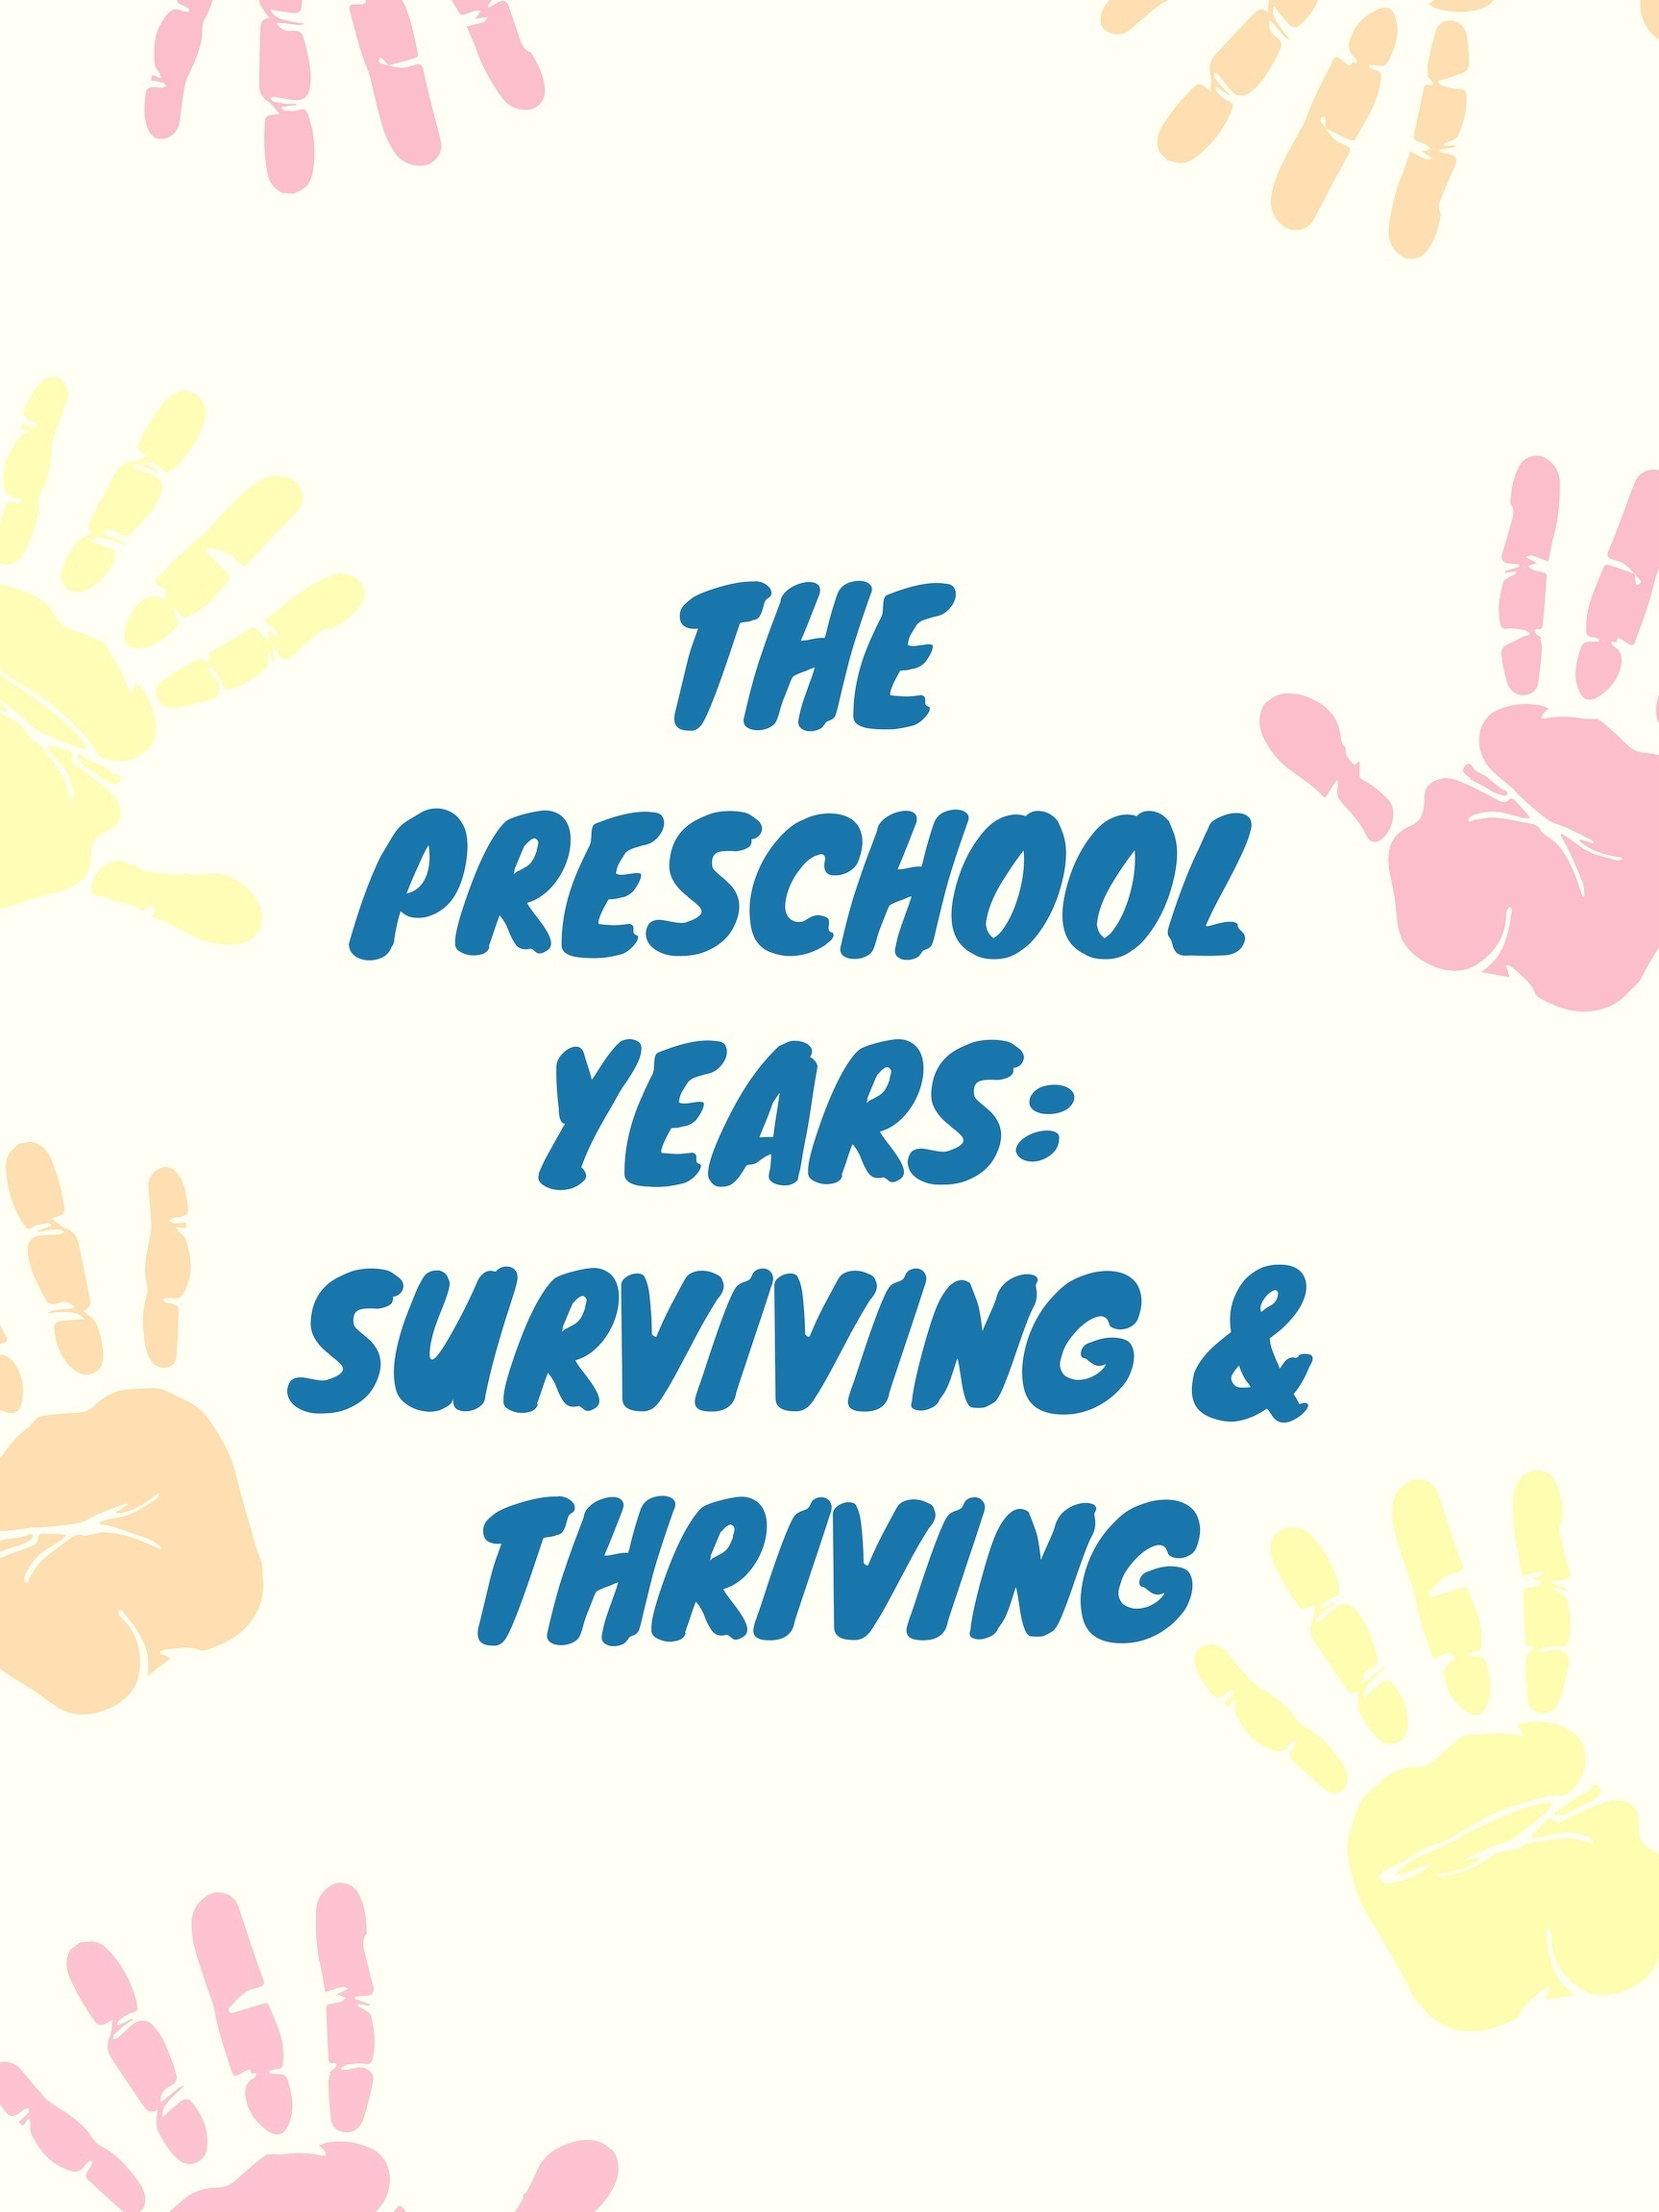 Take the parenting journey from just surviving to powerfully thriving with parenting strategies geared for the preschool years! -